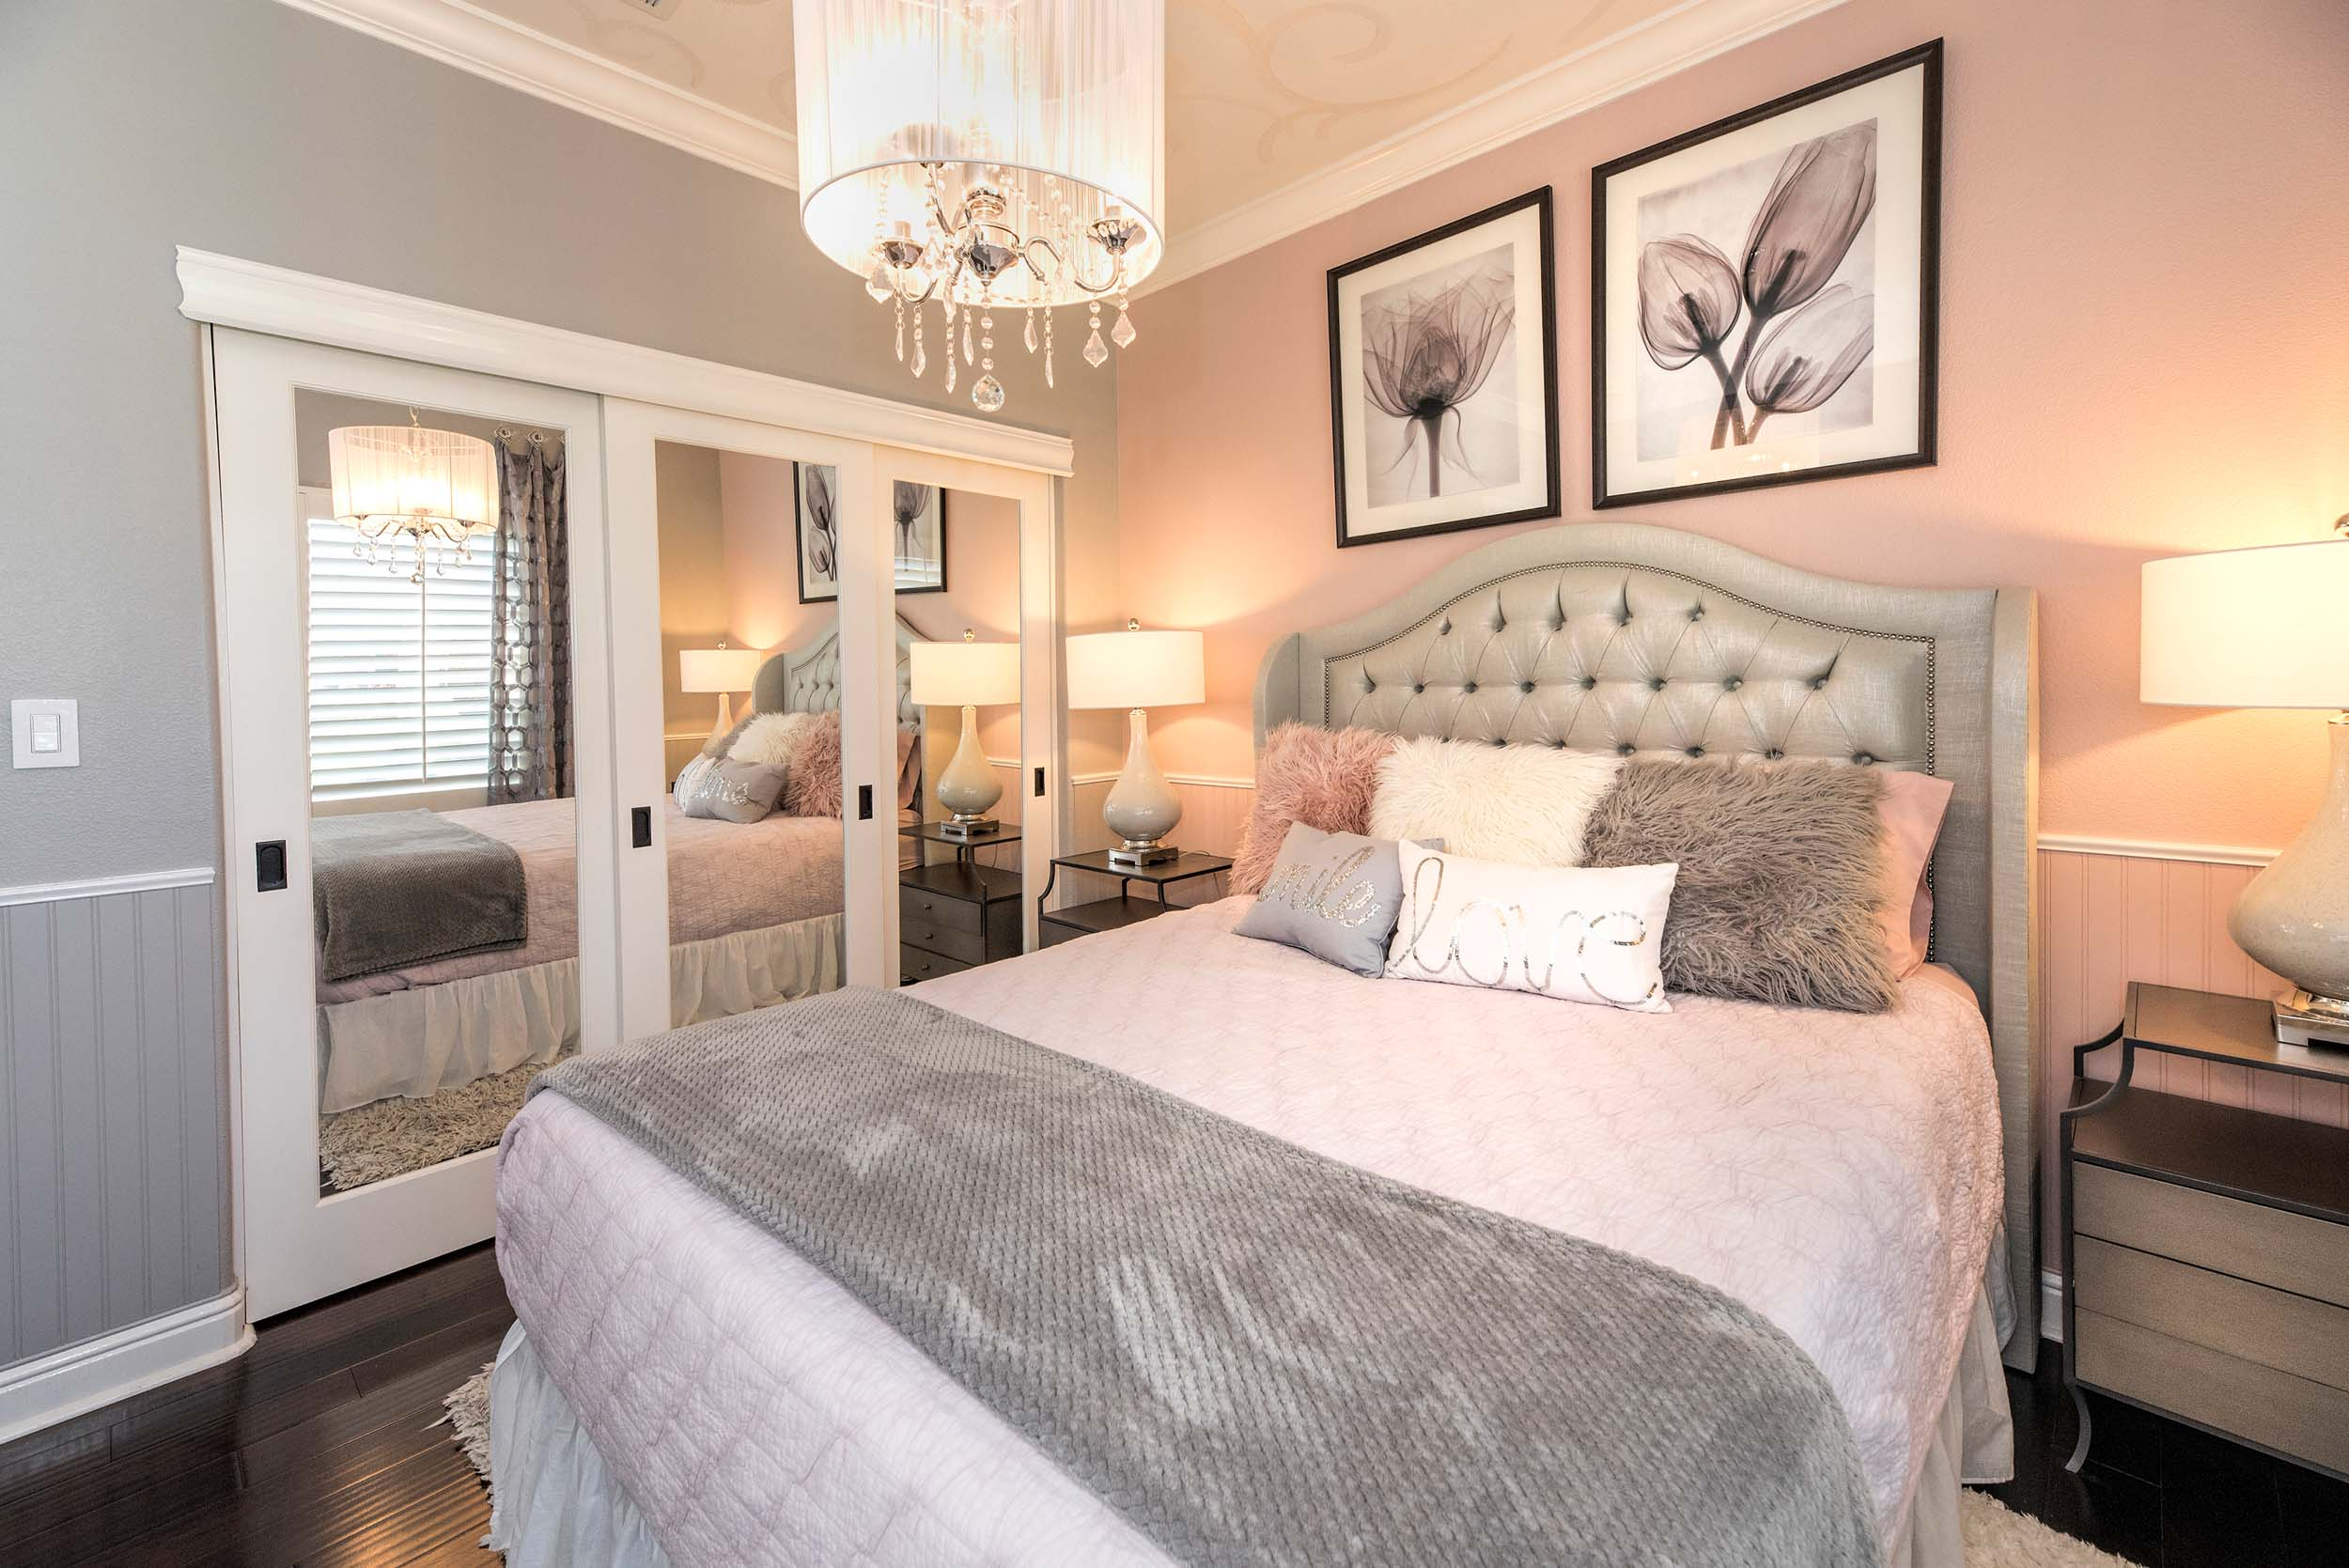 Bedroom with large bed, mirrored door cabinet, chandelier and frames on wall